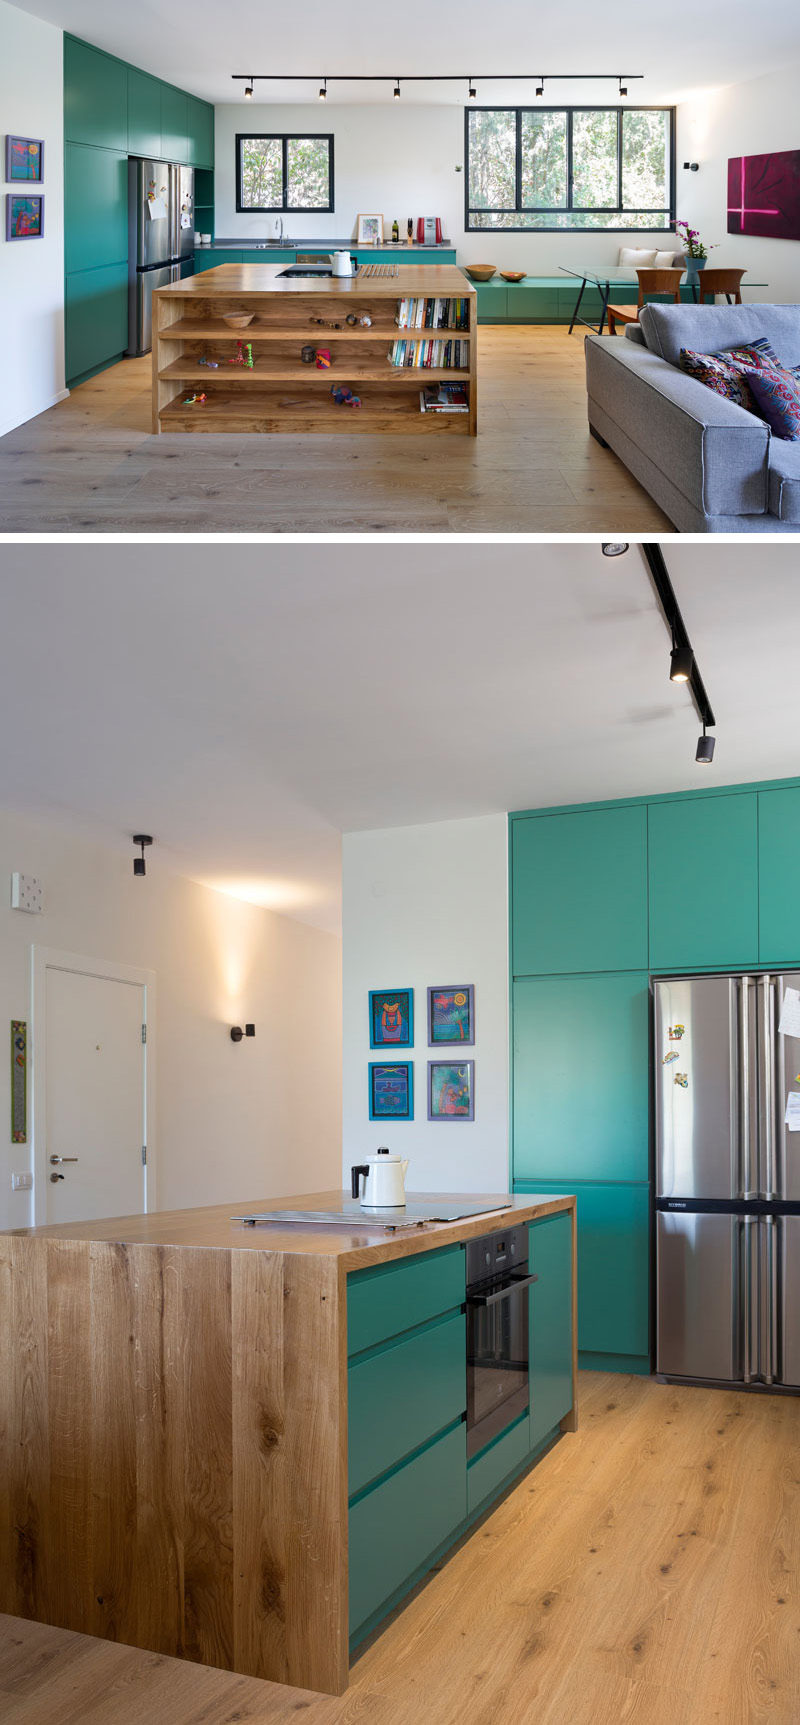 This modern kitchen with green cabinets also features a wood island with open shelving for extra storage.